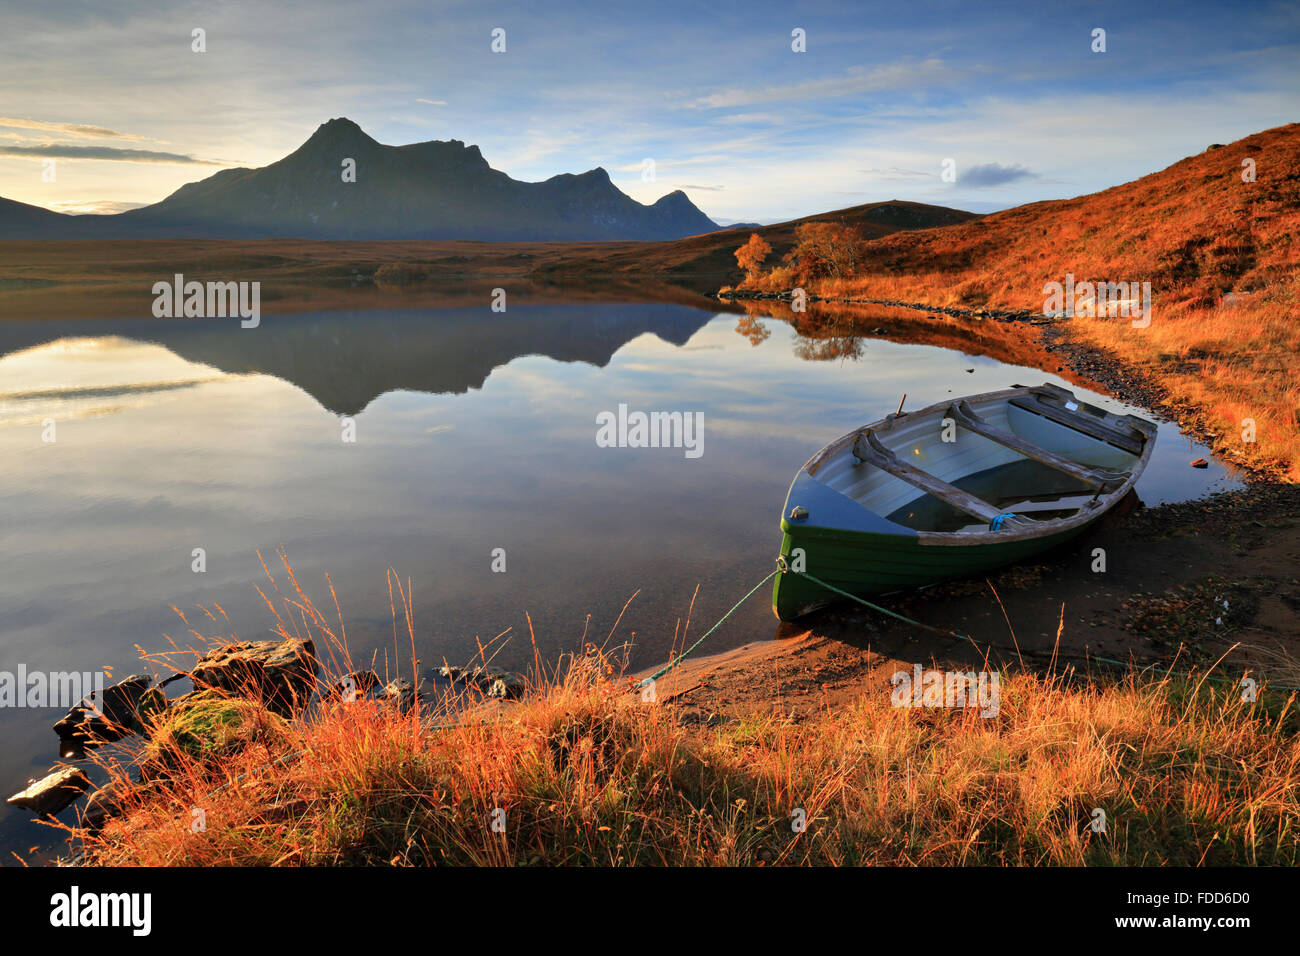 A boat on Loch Hakel near Tongue in North West Scotland, with Ben Loyal in the distance. Stock Photo